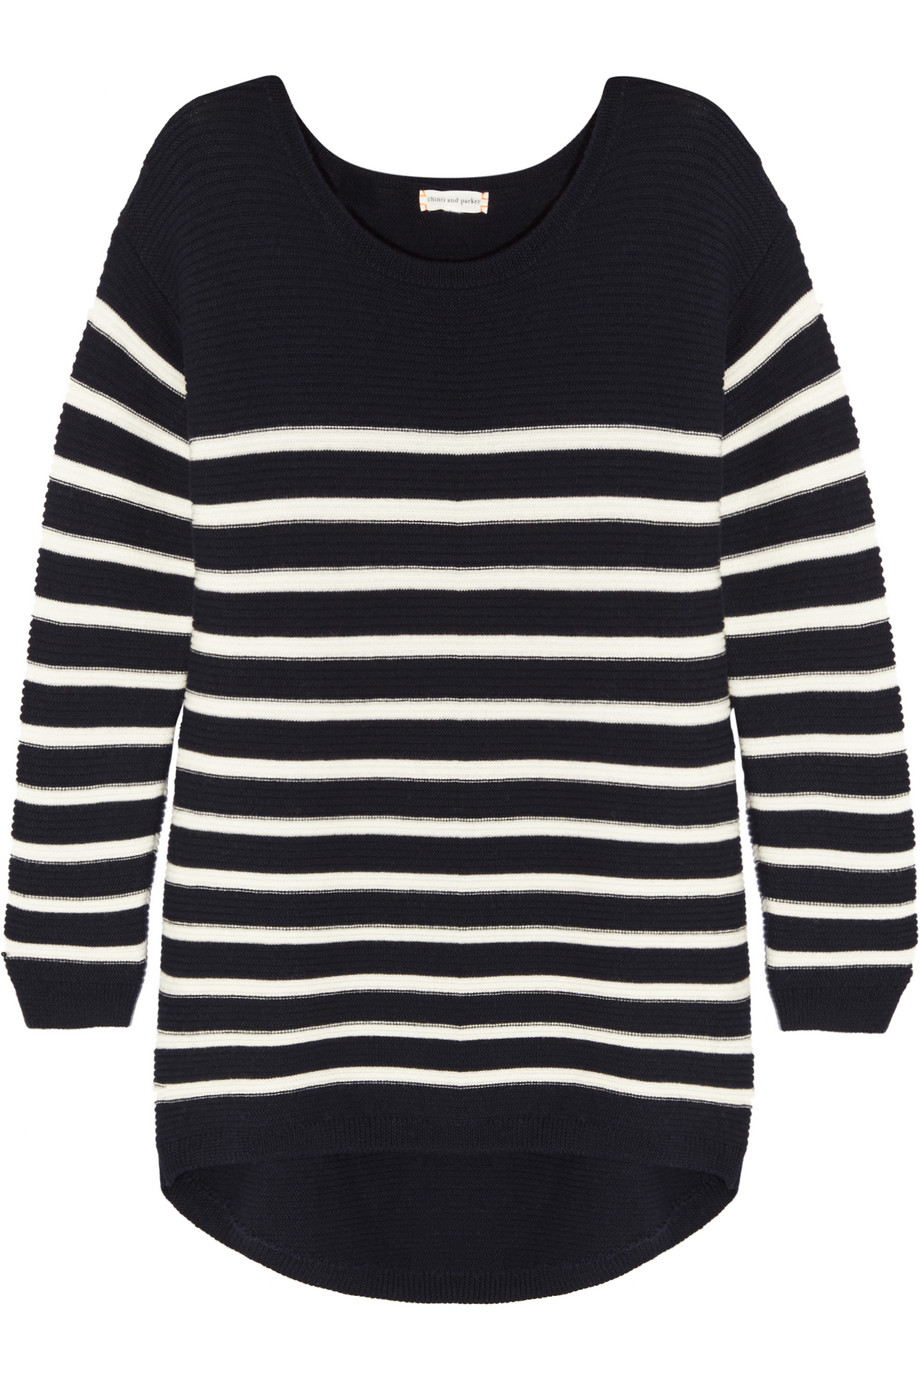 Striped Merino Wool Sweater, Chinti and Parker, Navy, Women's